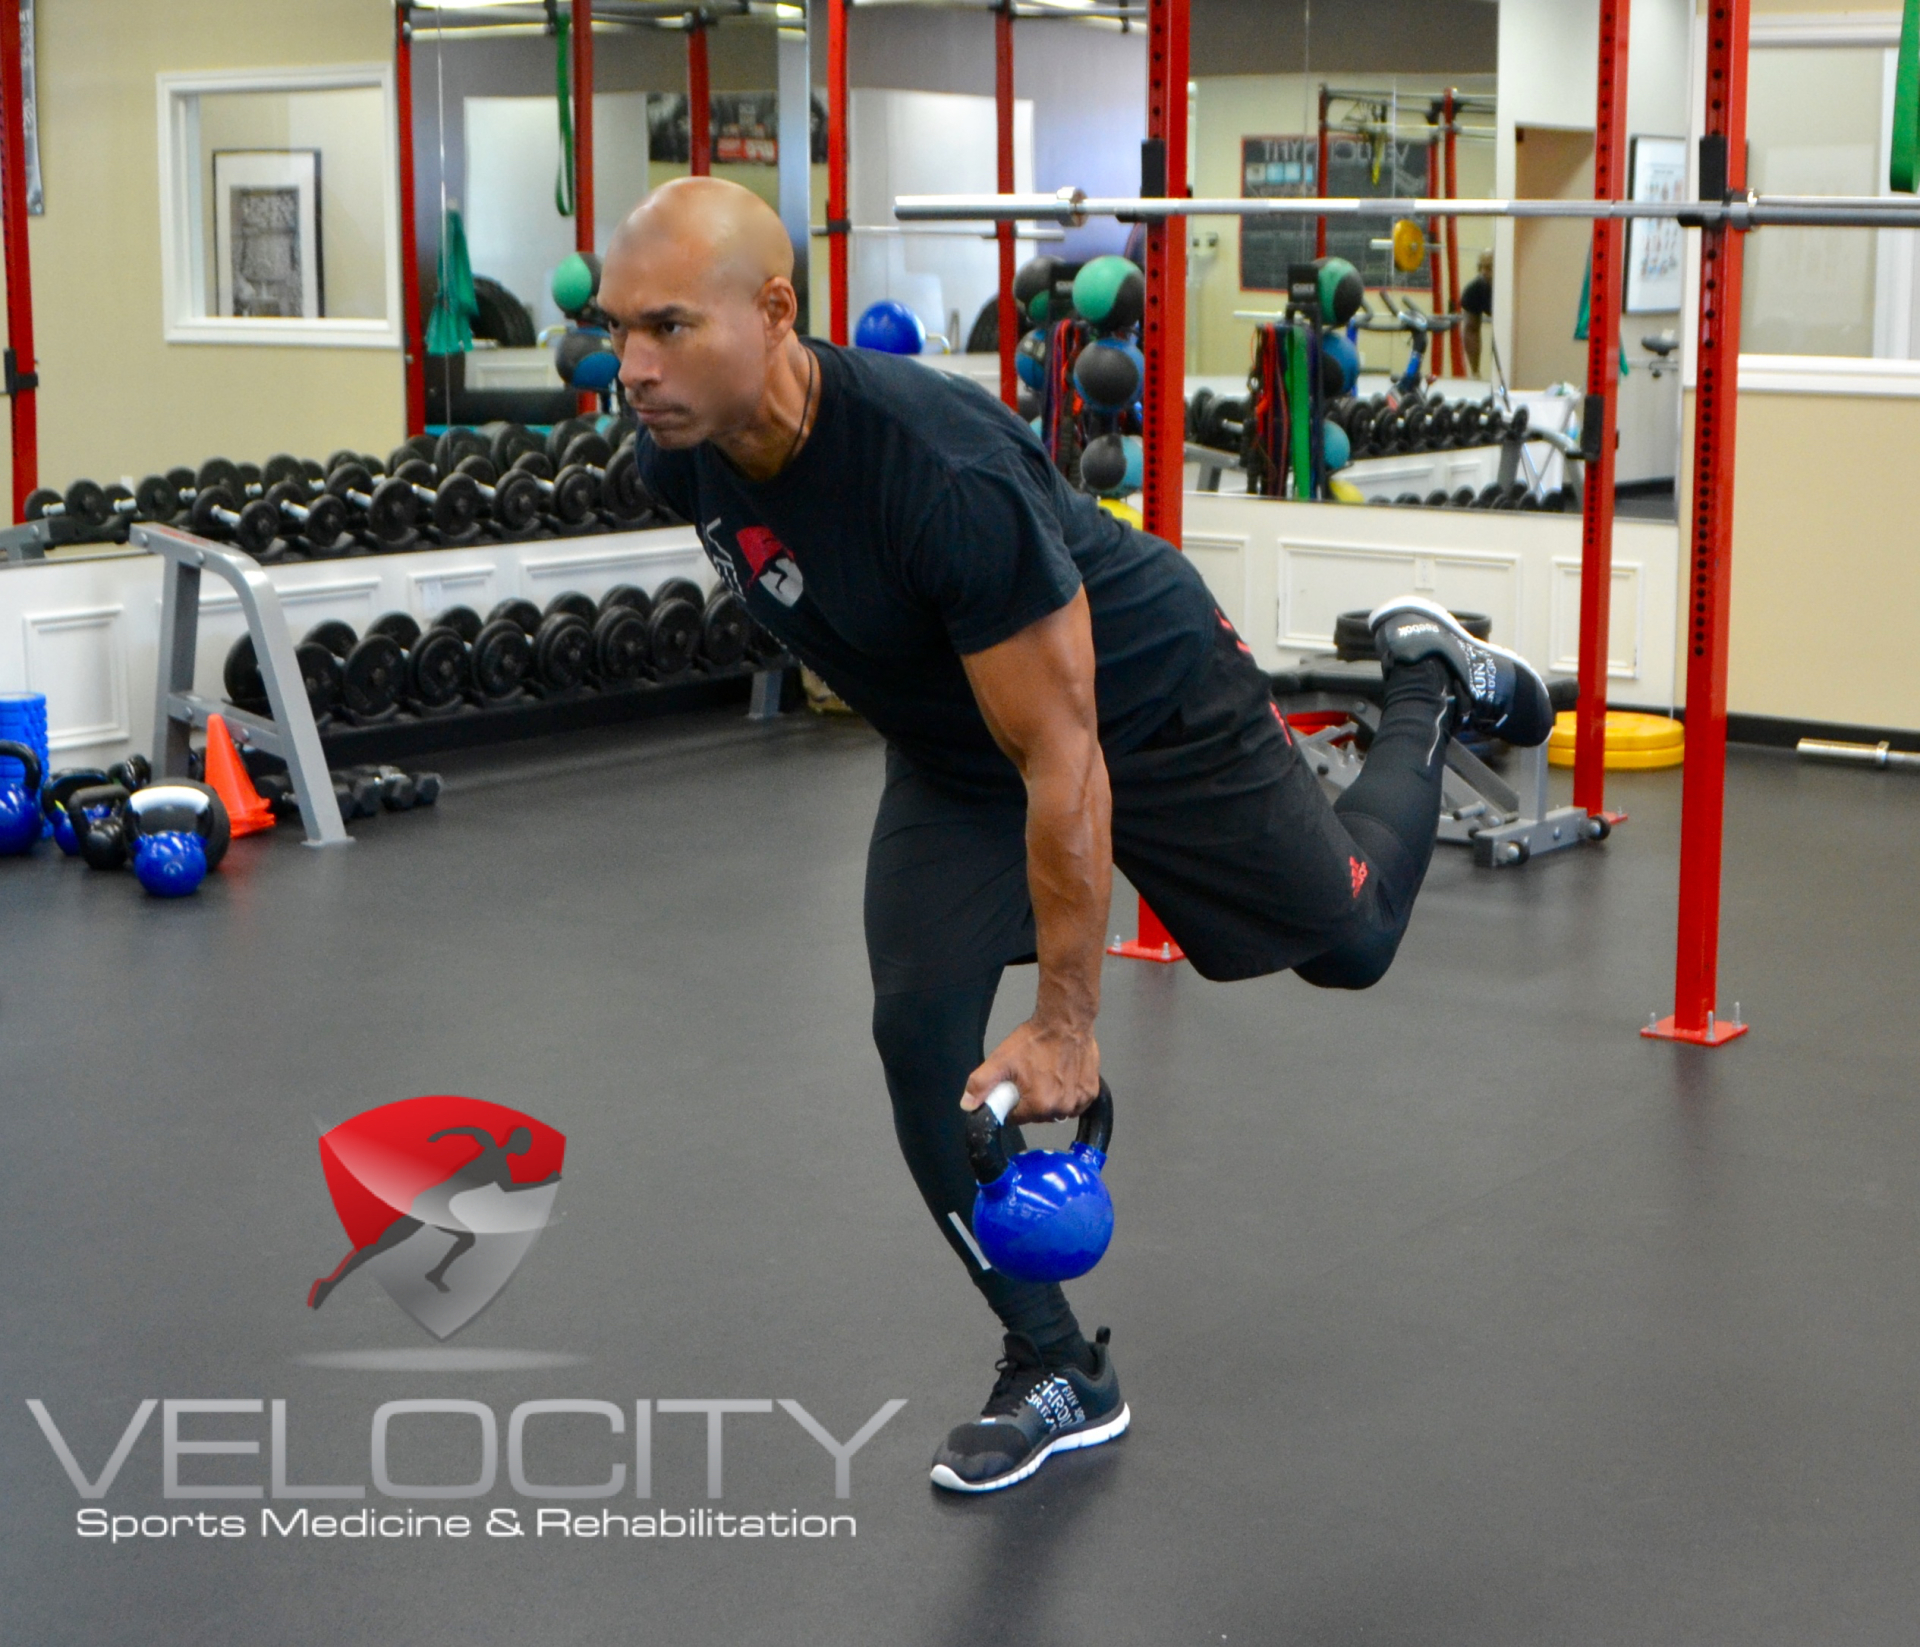 Jeff Ransome working Kettlebells